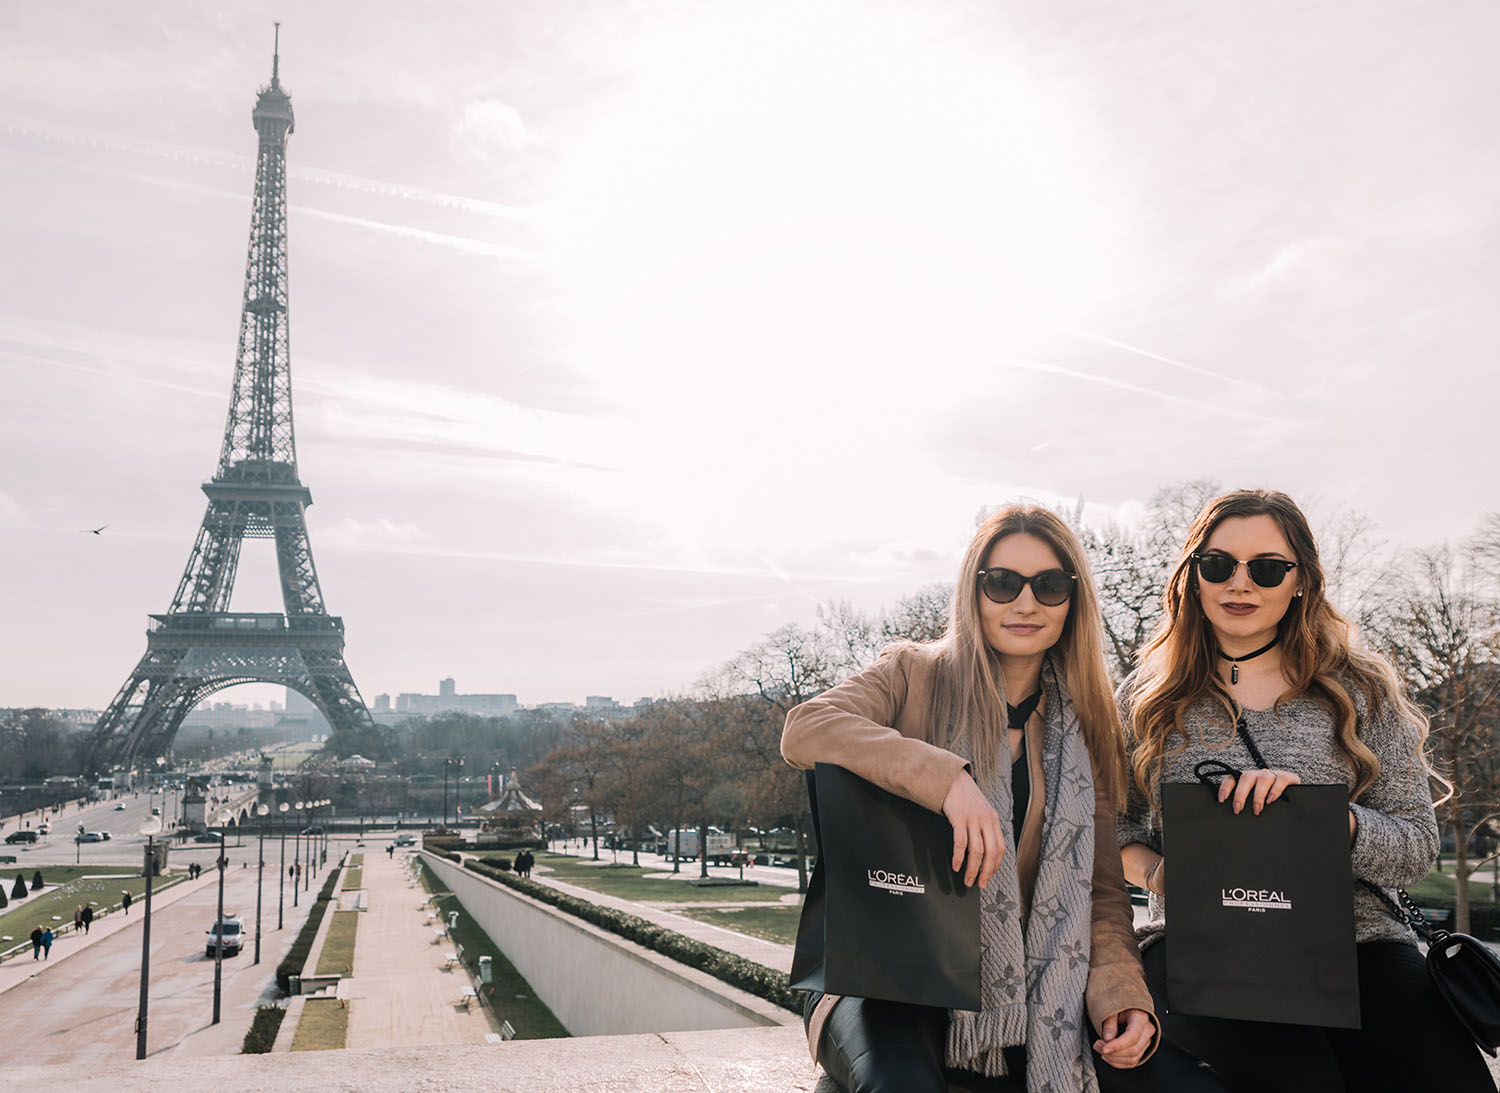 L'Oréal Professionnel's Influencer Event in Paris